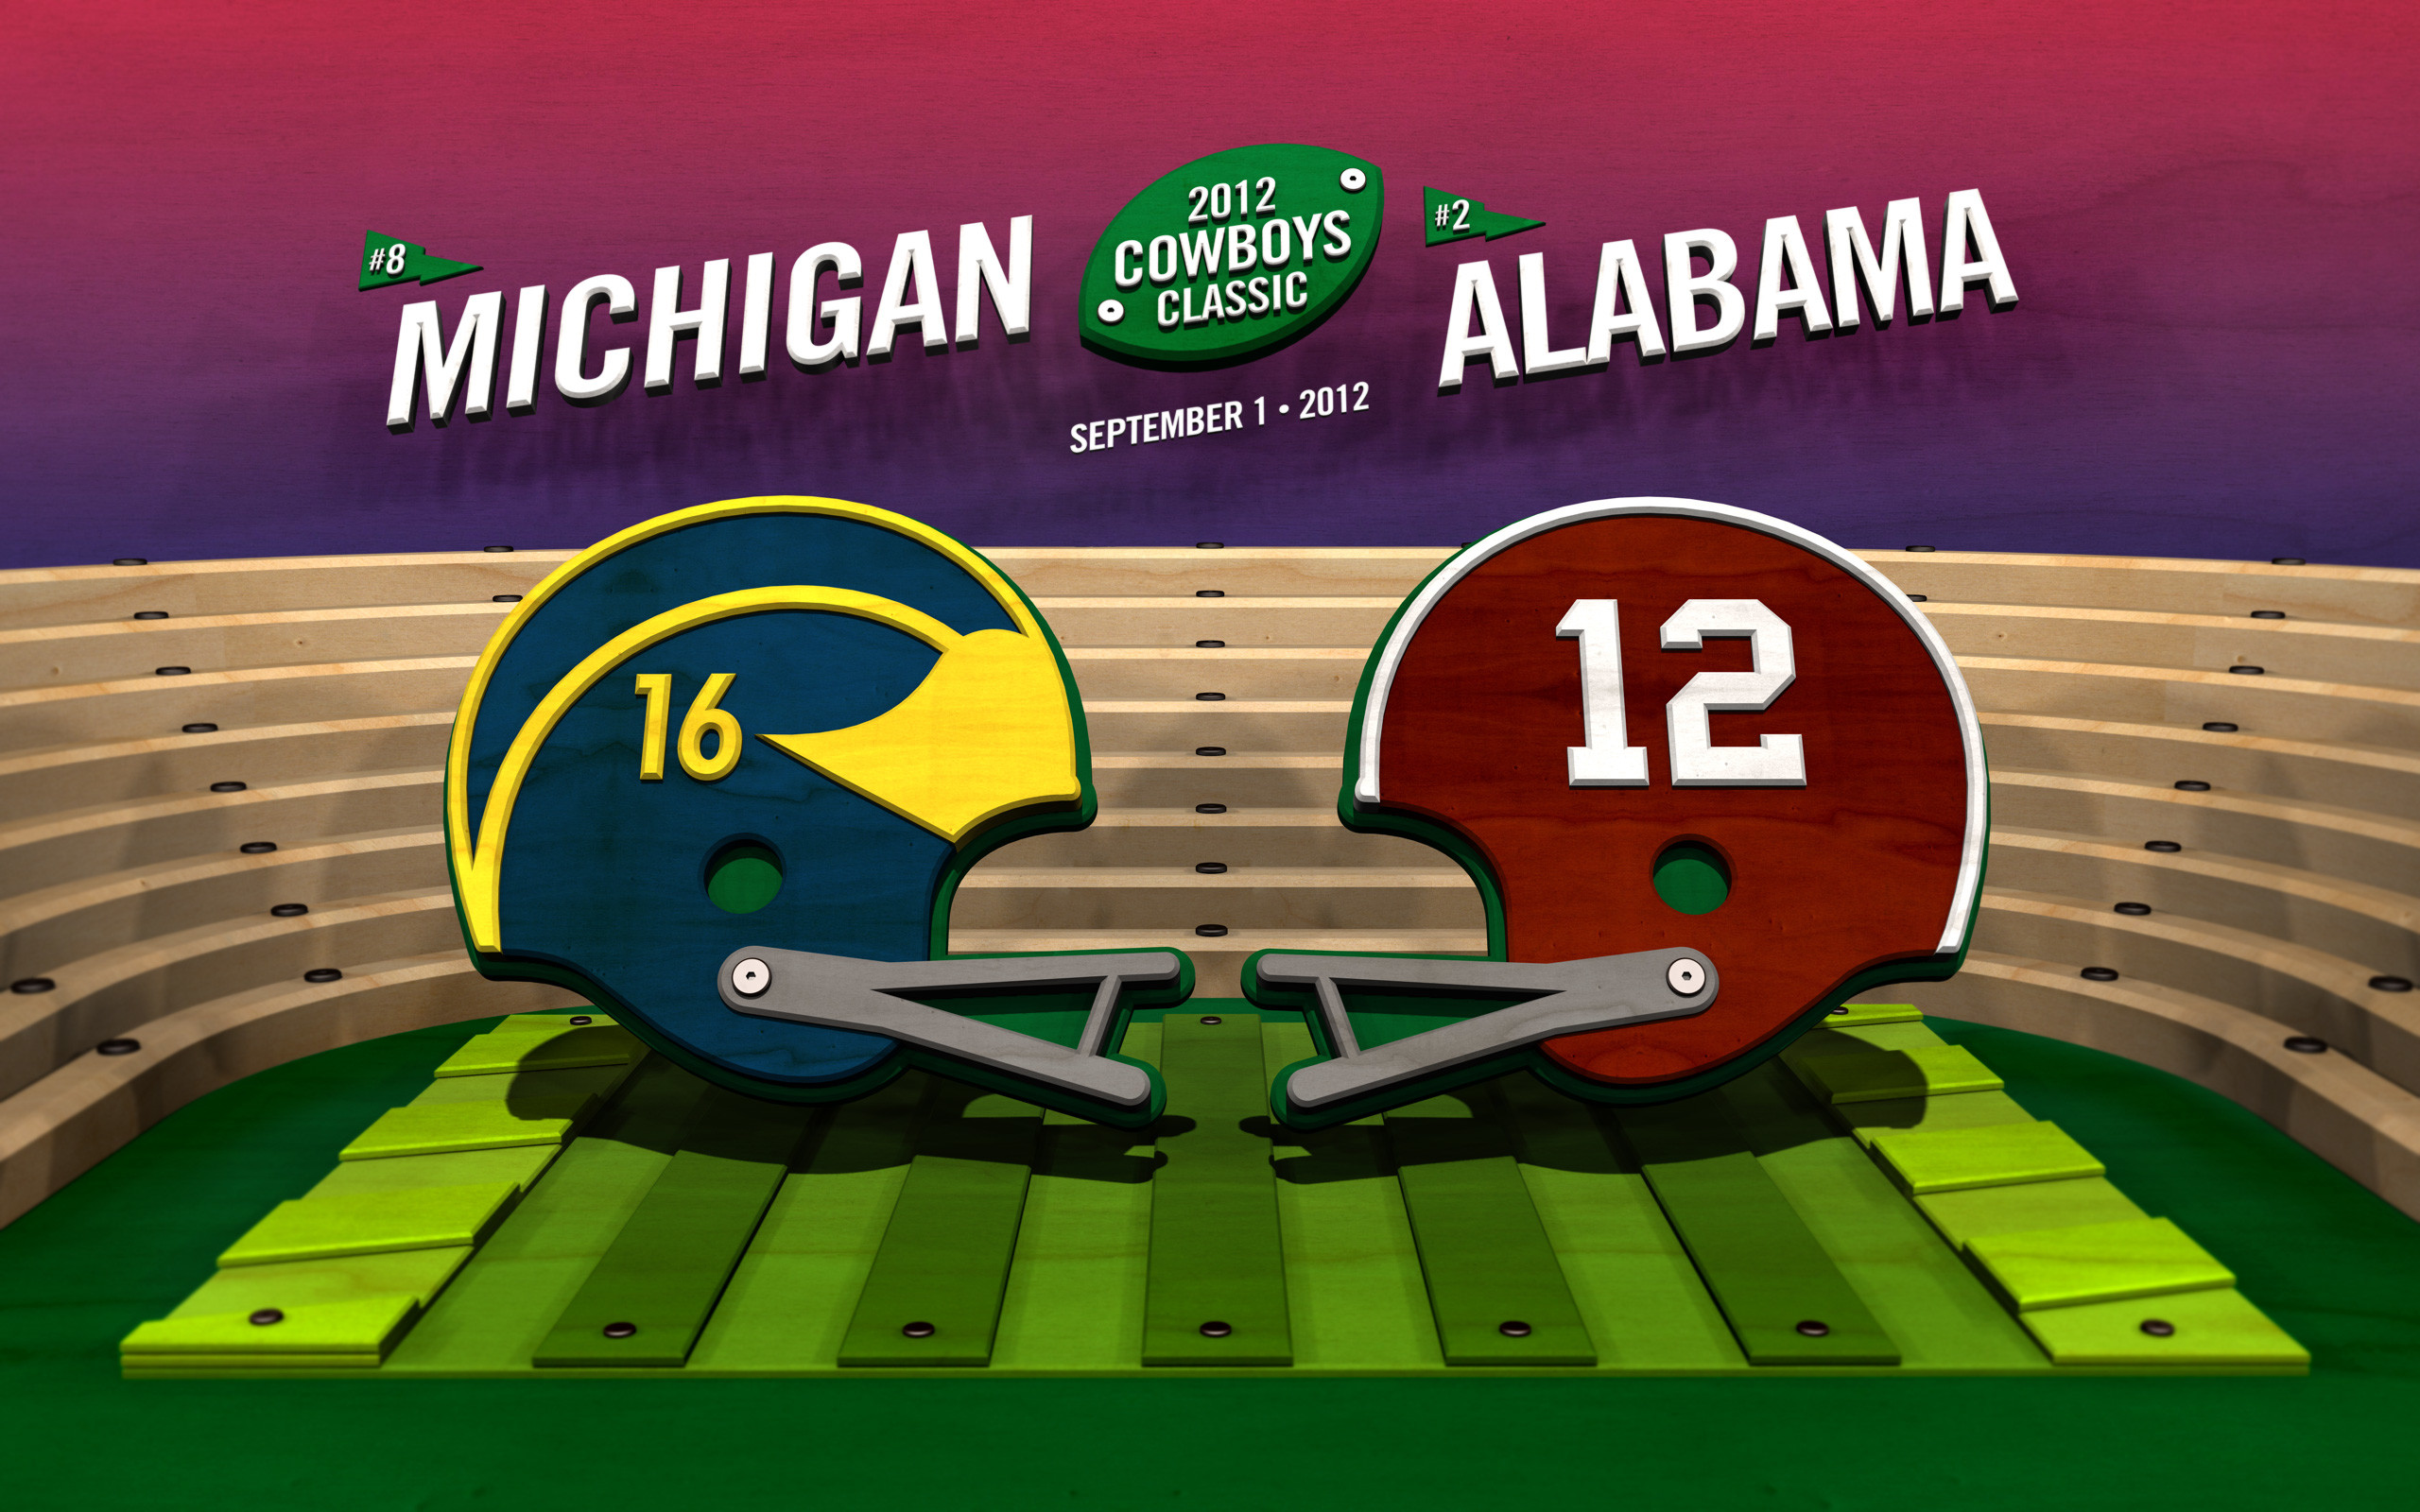 Michigan Football Desktop Wallpaper 71 Images: Alabama Football Wallpaper (67+ Images